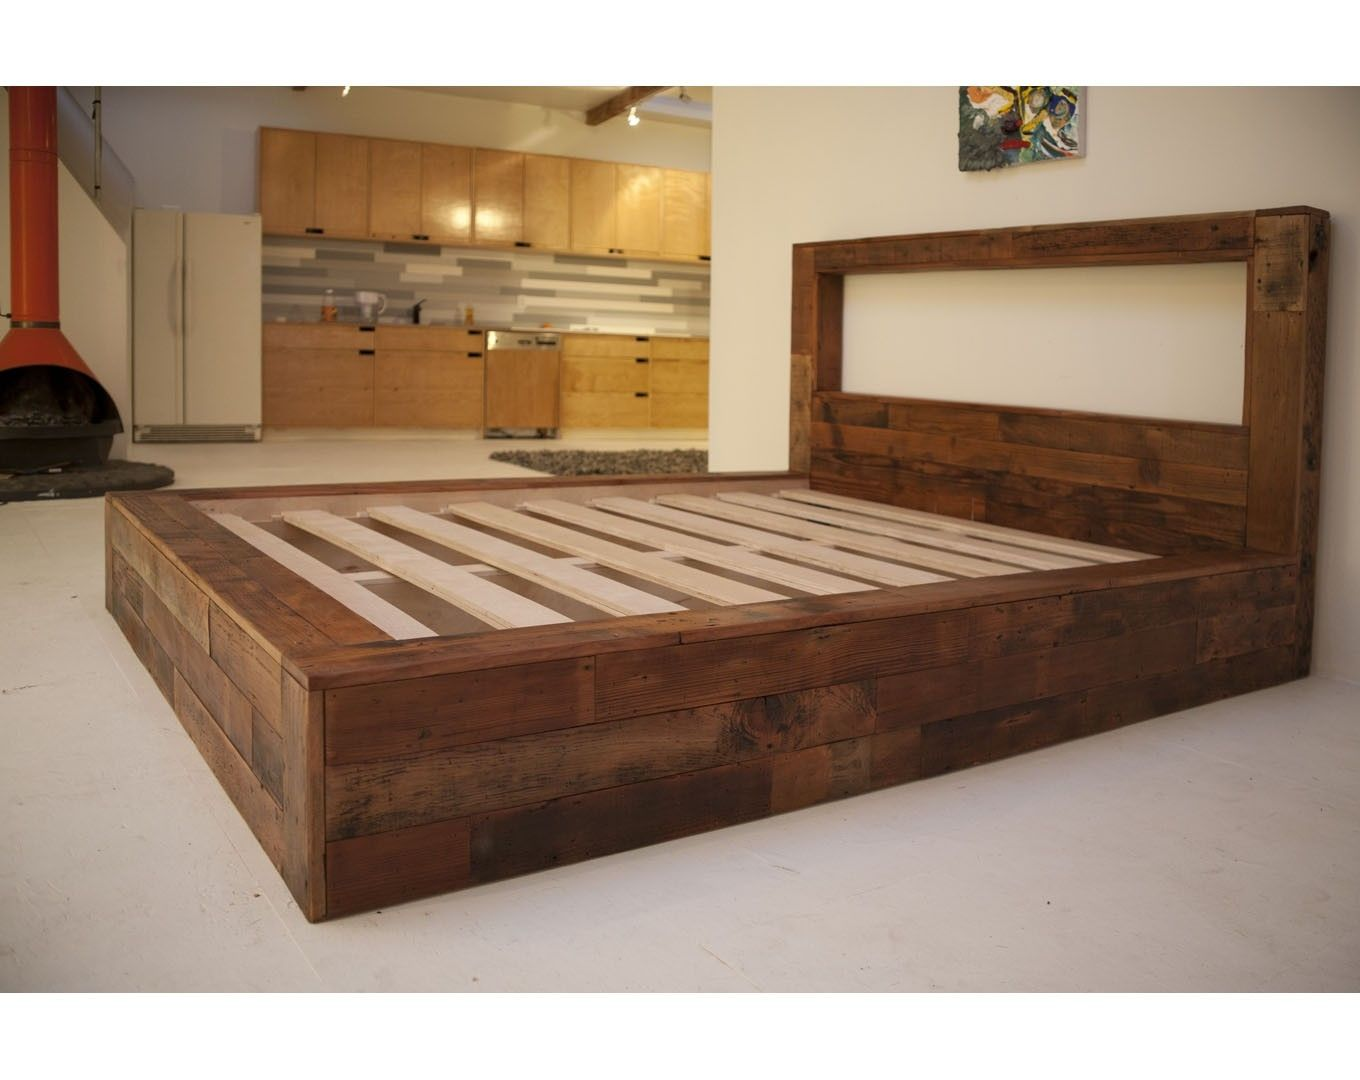 Custom Made Shenandoah Bed by Blake Avenue | Products I Want to Buy ...